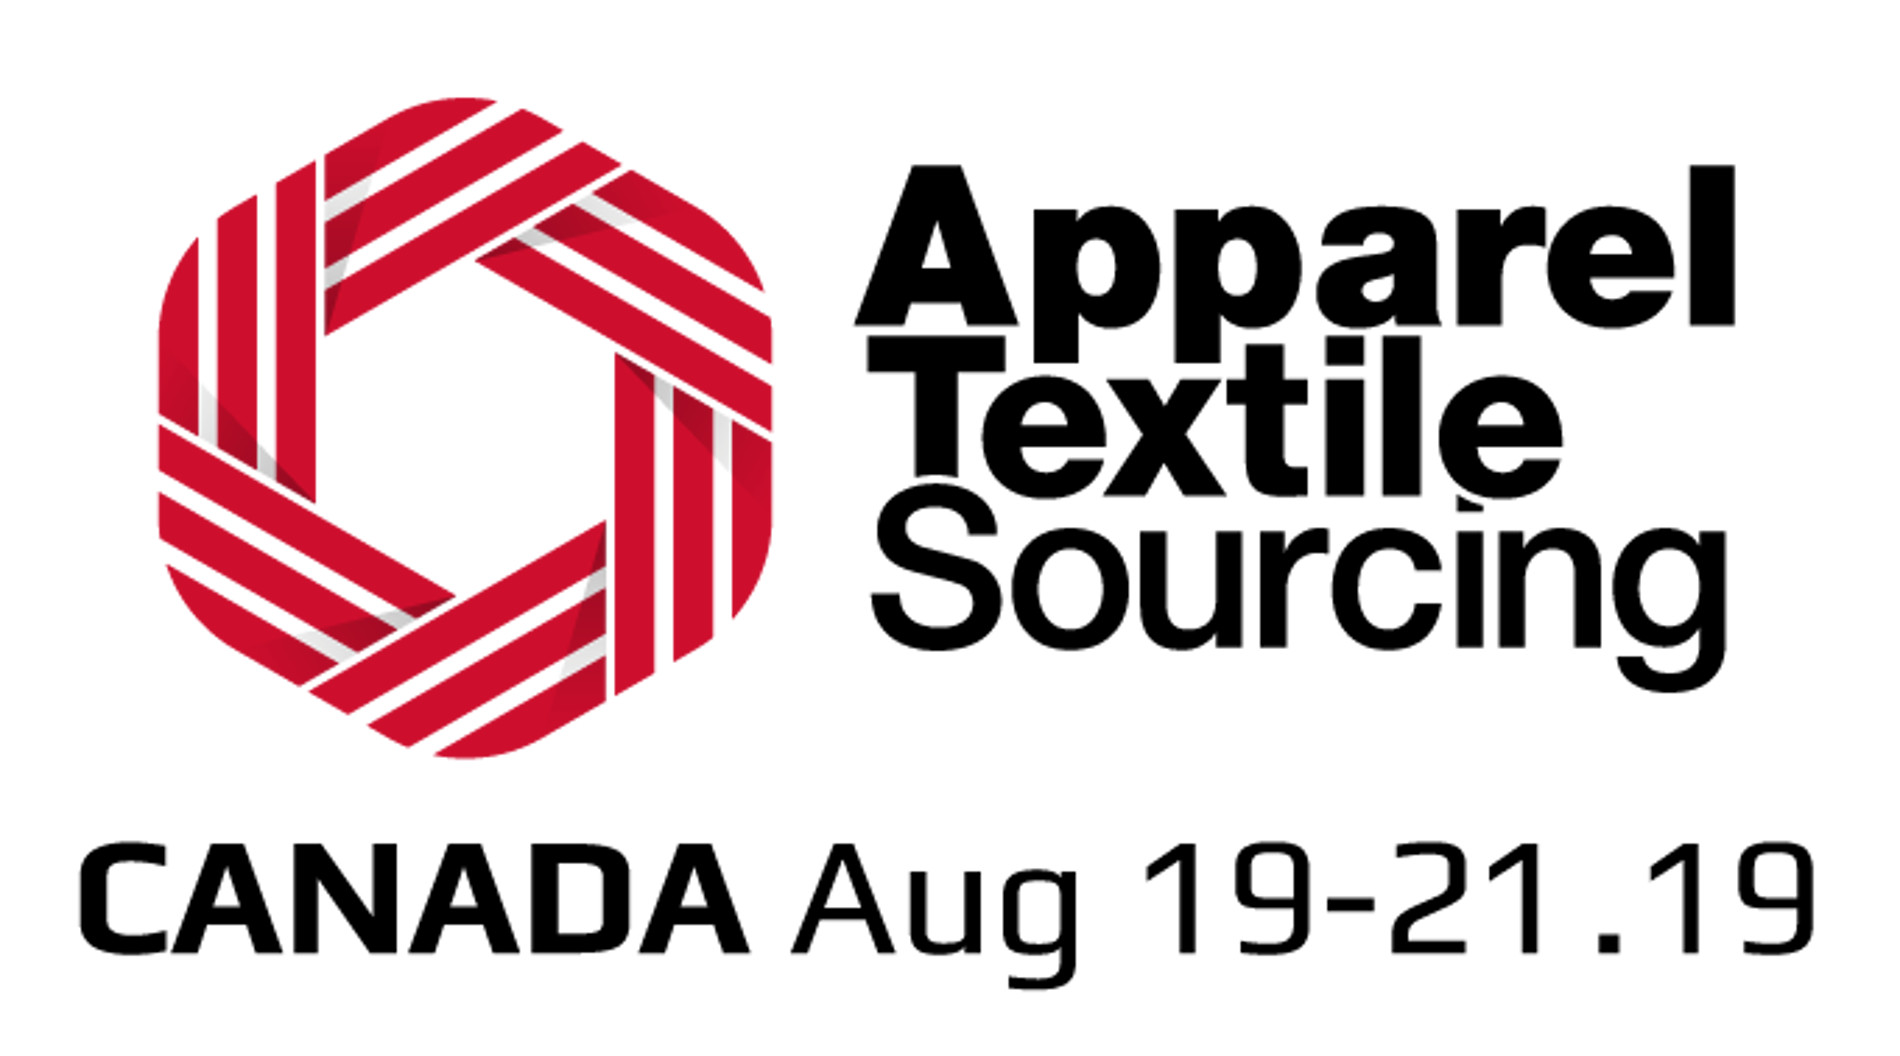 Apparel Textile Sourcing Canada